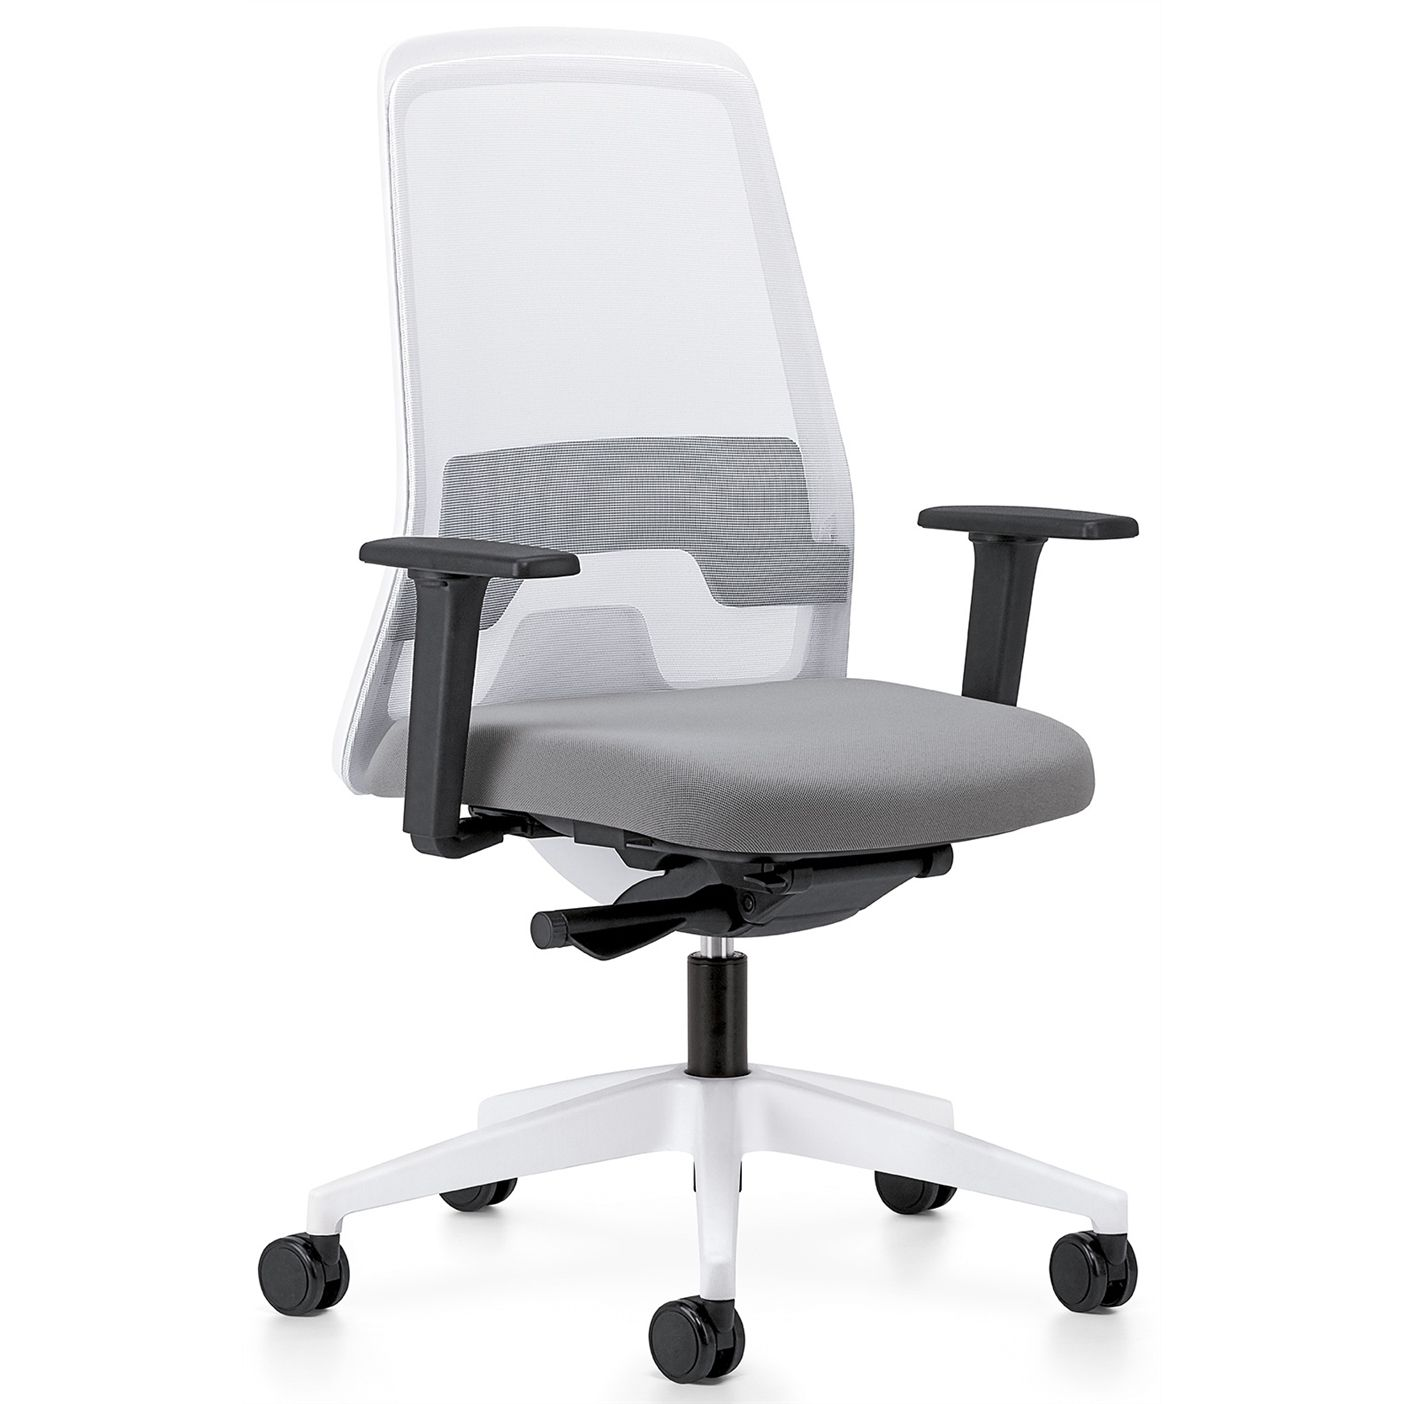 Interstuhl Every Is 1 Office Chair White Edition Office Chairs Uk Office Chair White Office Chair Most Comfortable Office Chair